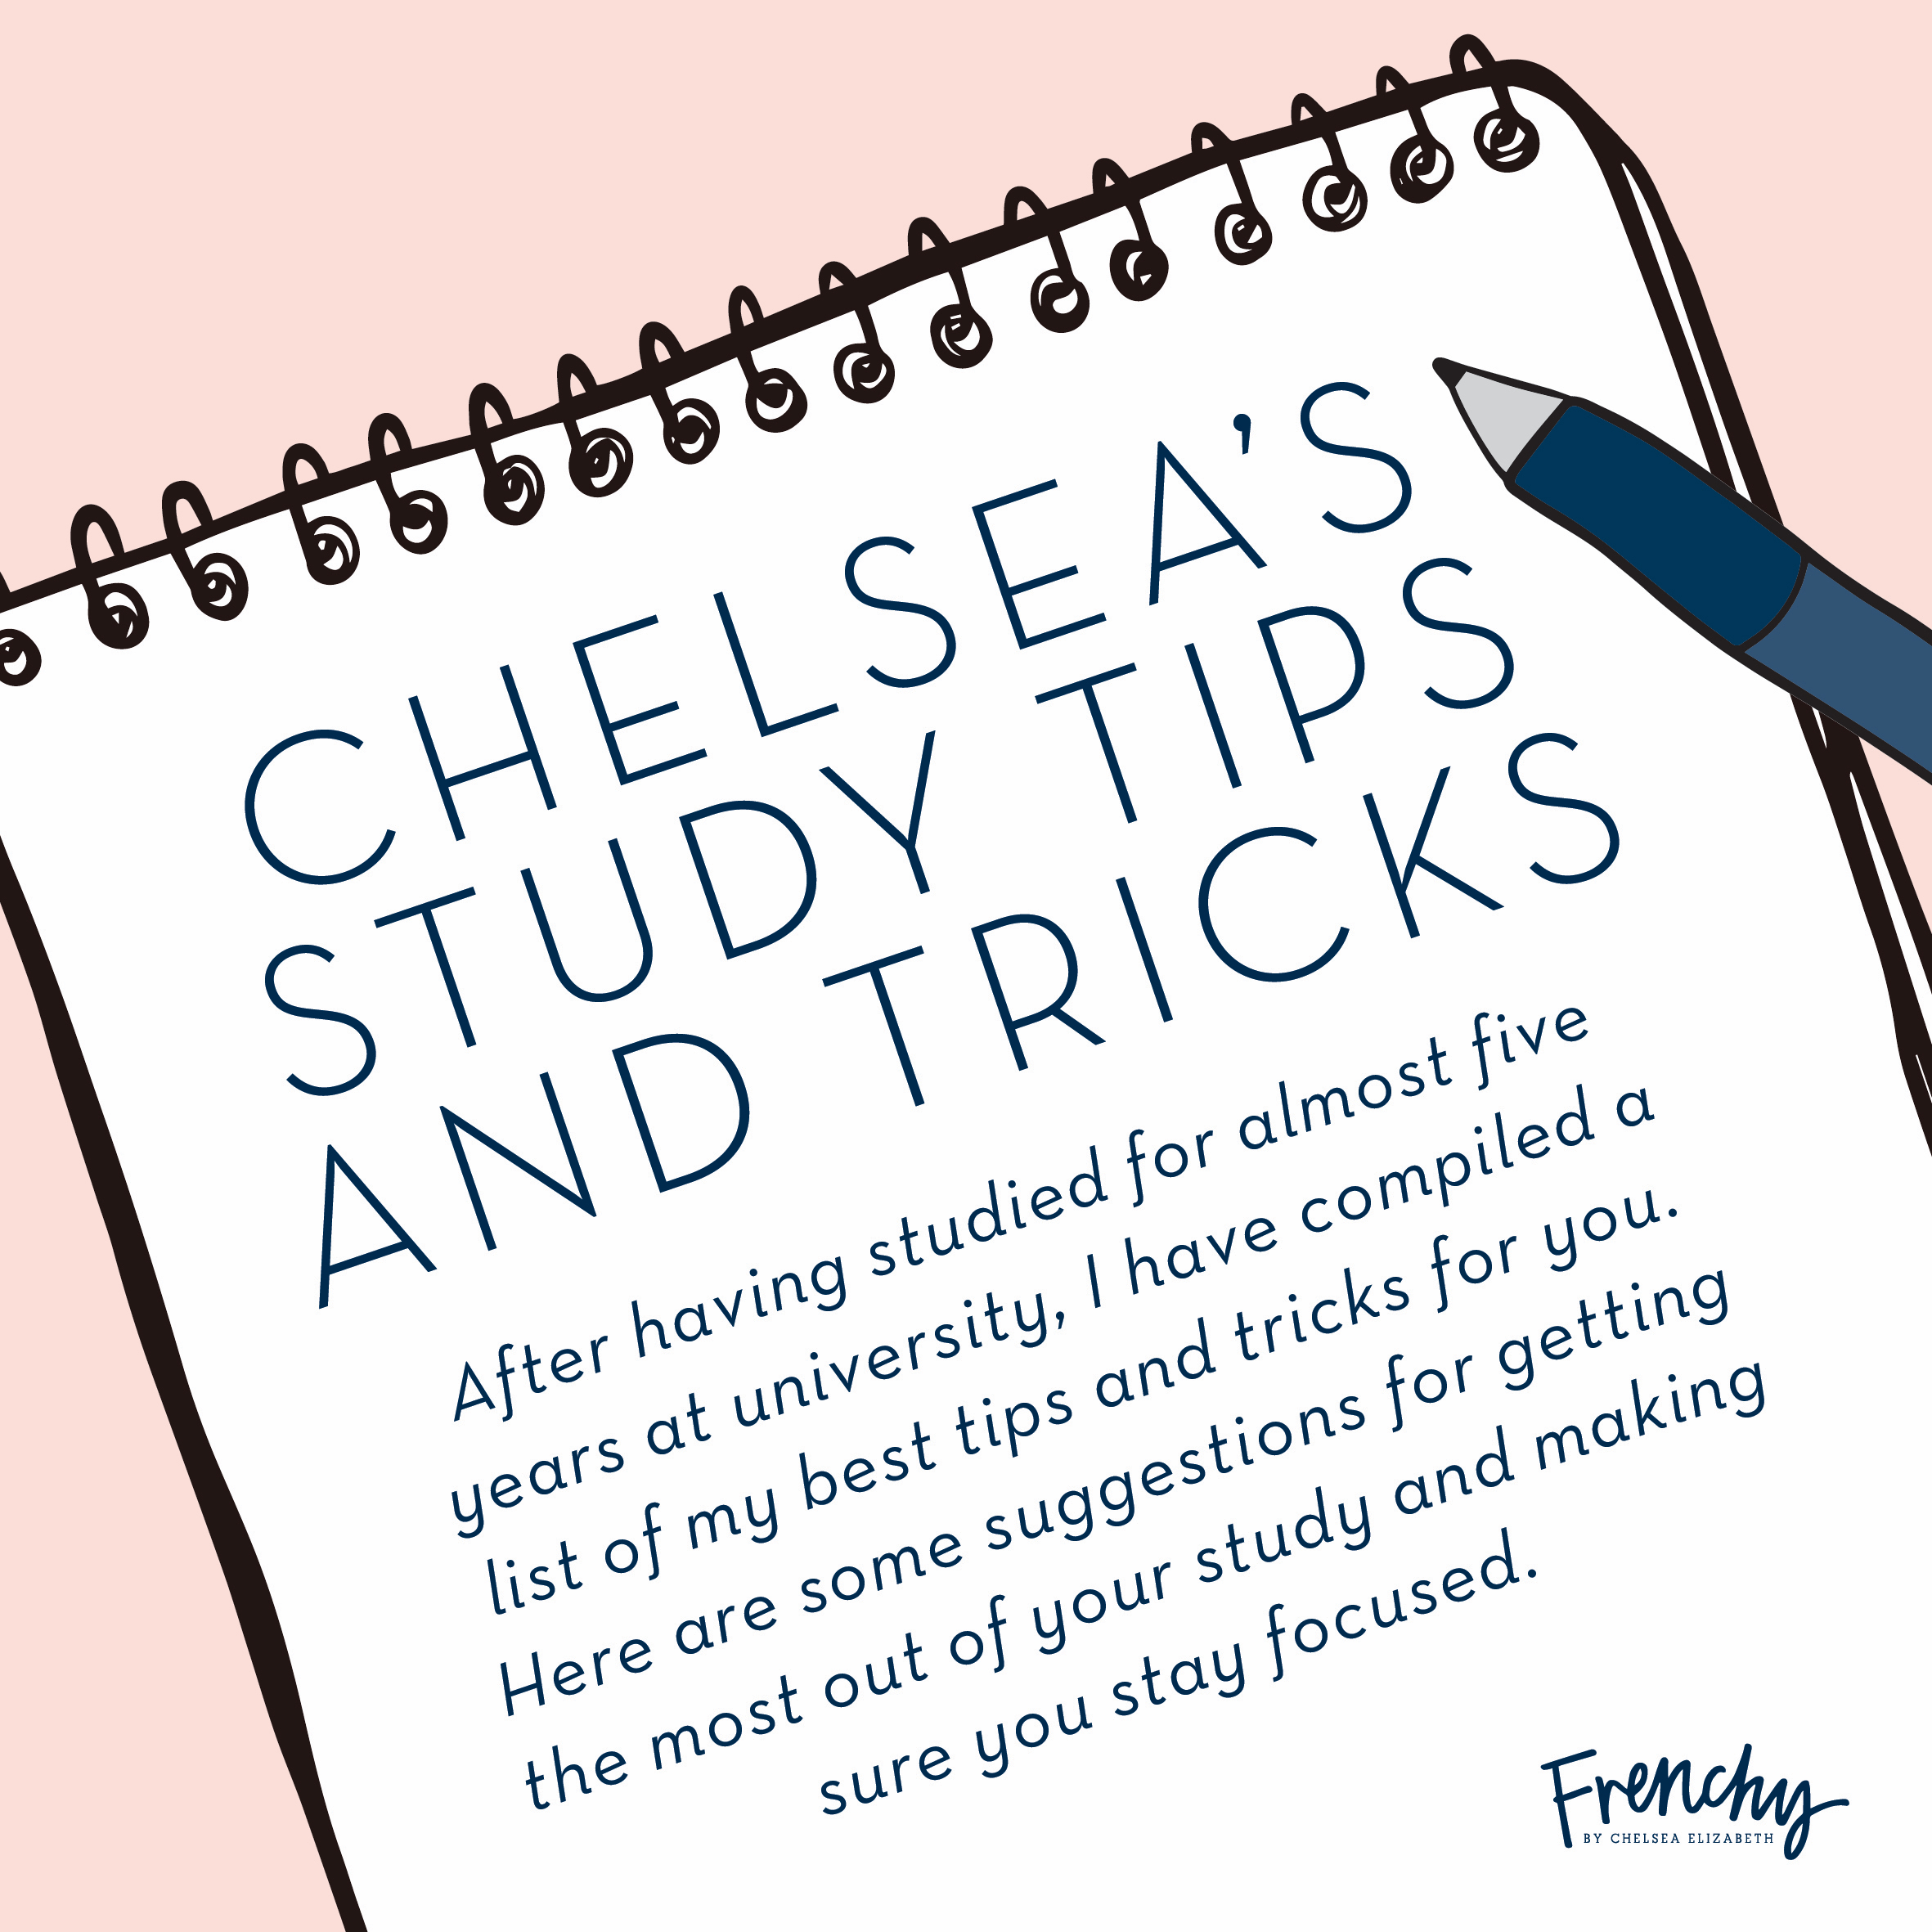 WANT TO SUCCEED WITH YOUR STUDIES? - Get access to 10 of my best study tips and tricks, with my free poster!